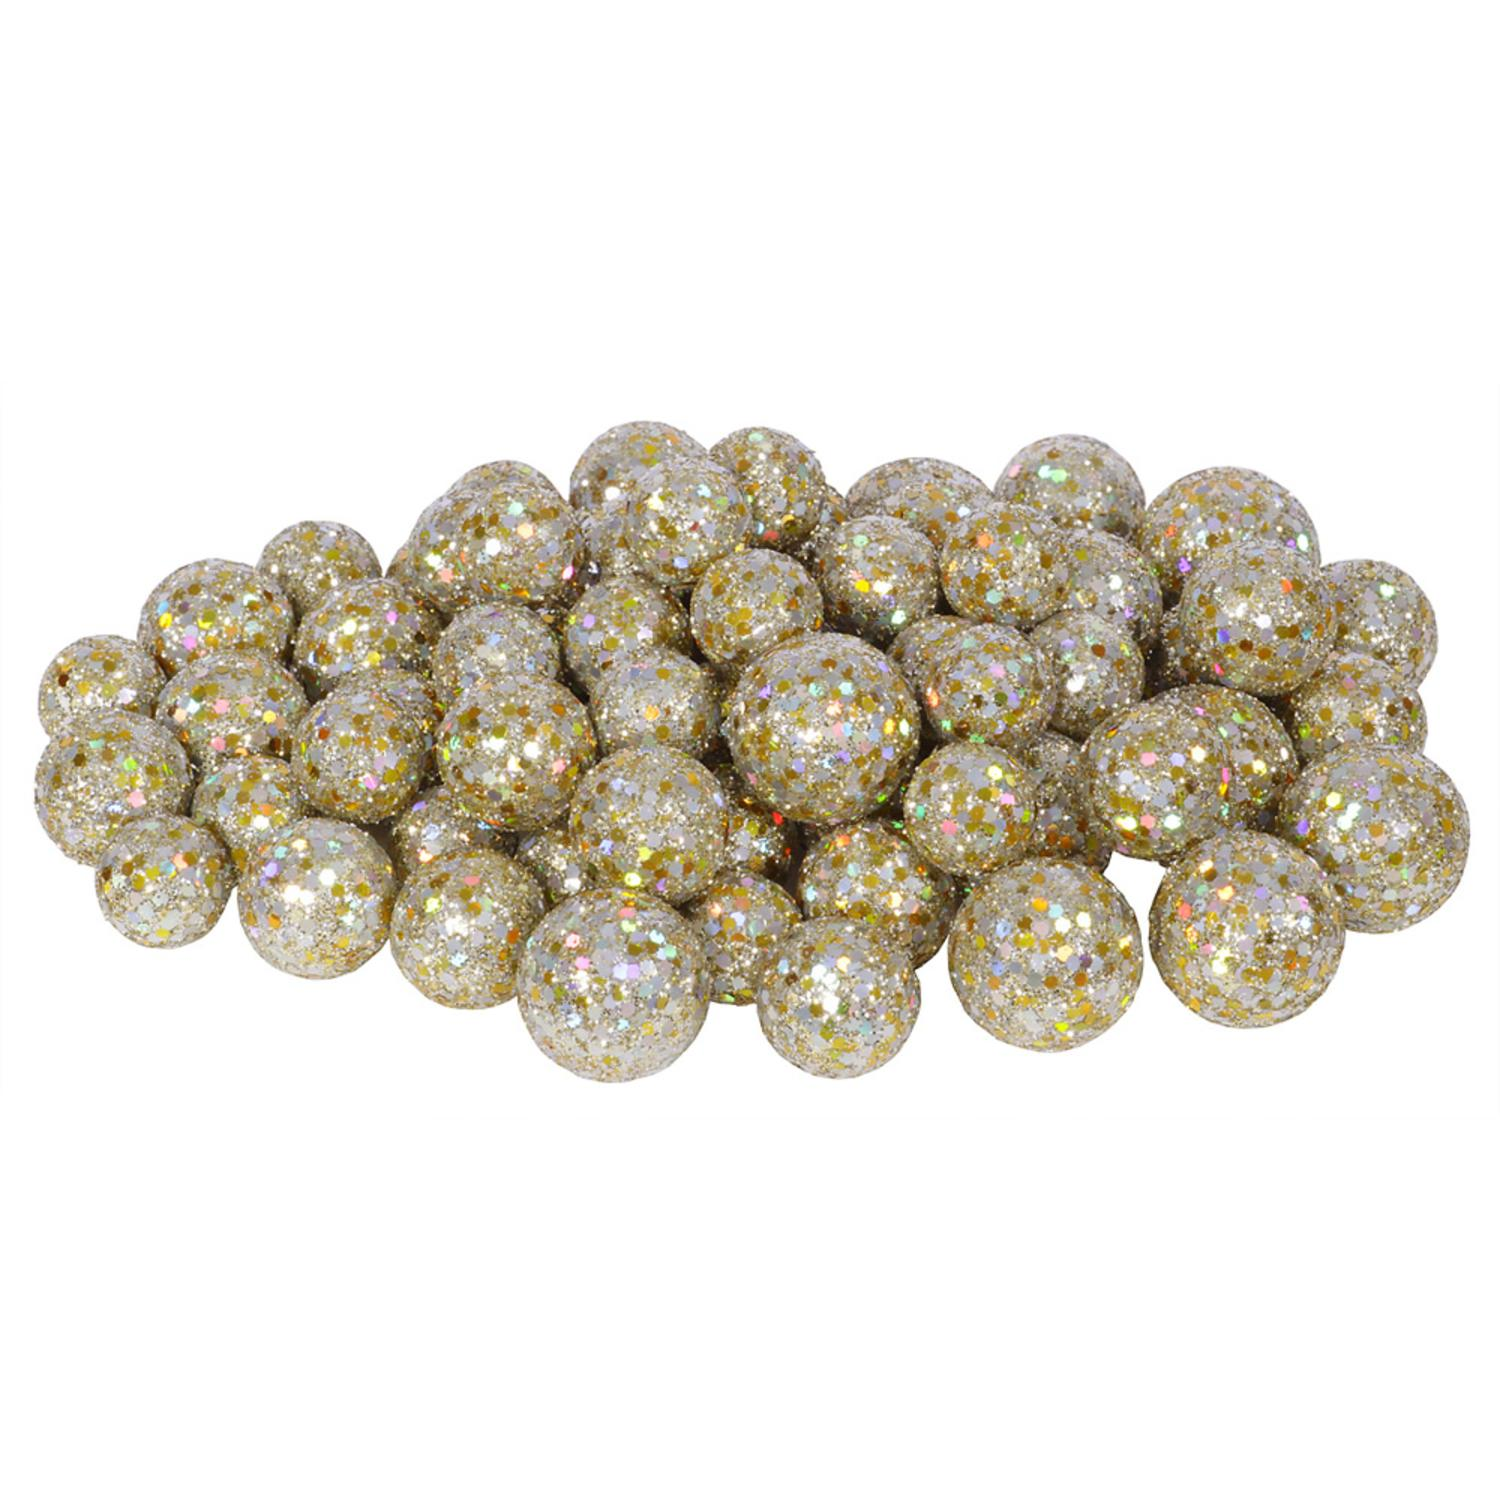 "60ct Champagne Sequin and Glitter Christmas Ball Decorations 0.8"" - 1.25"""